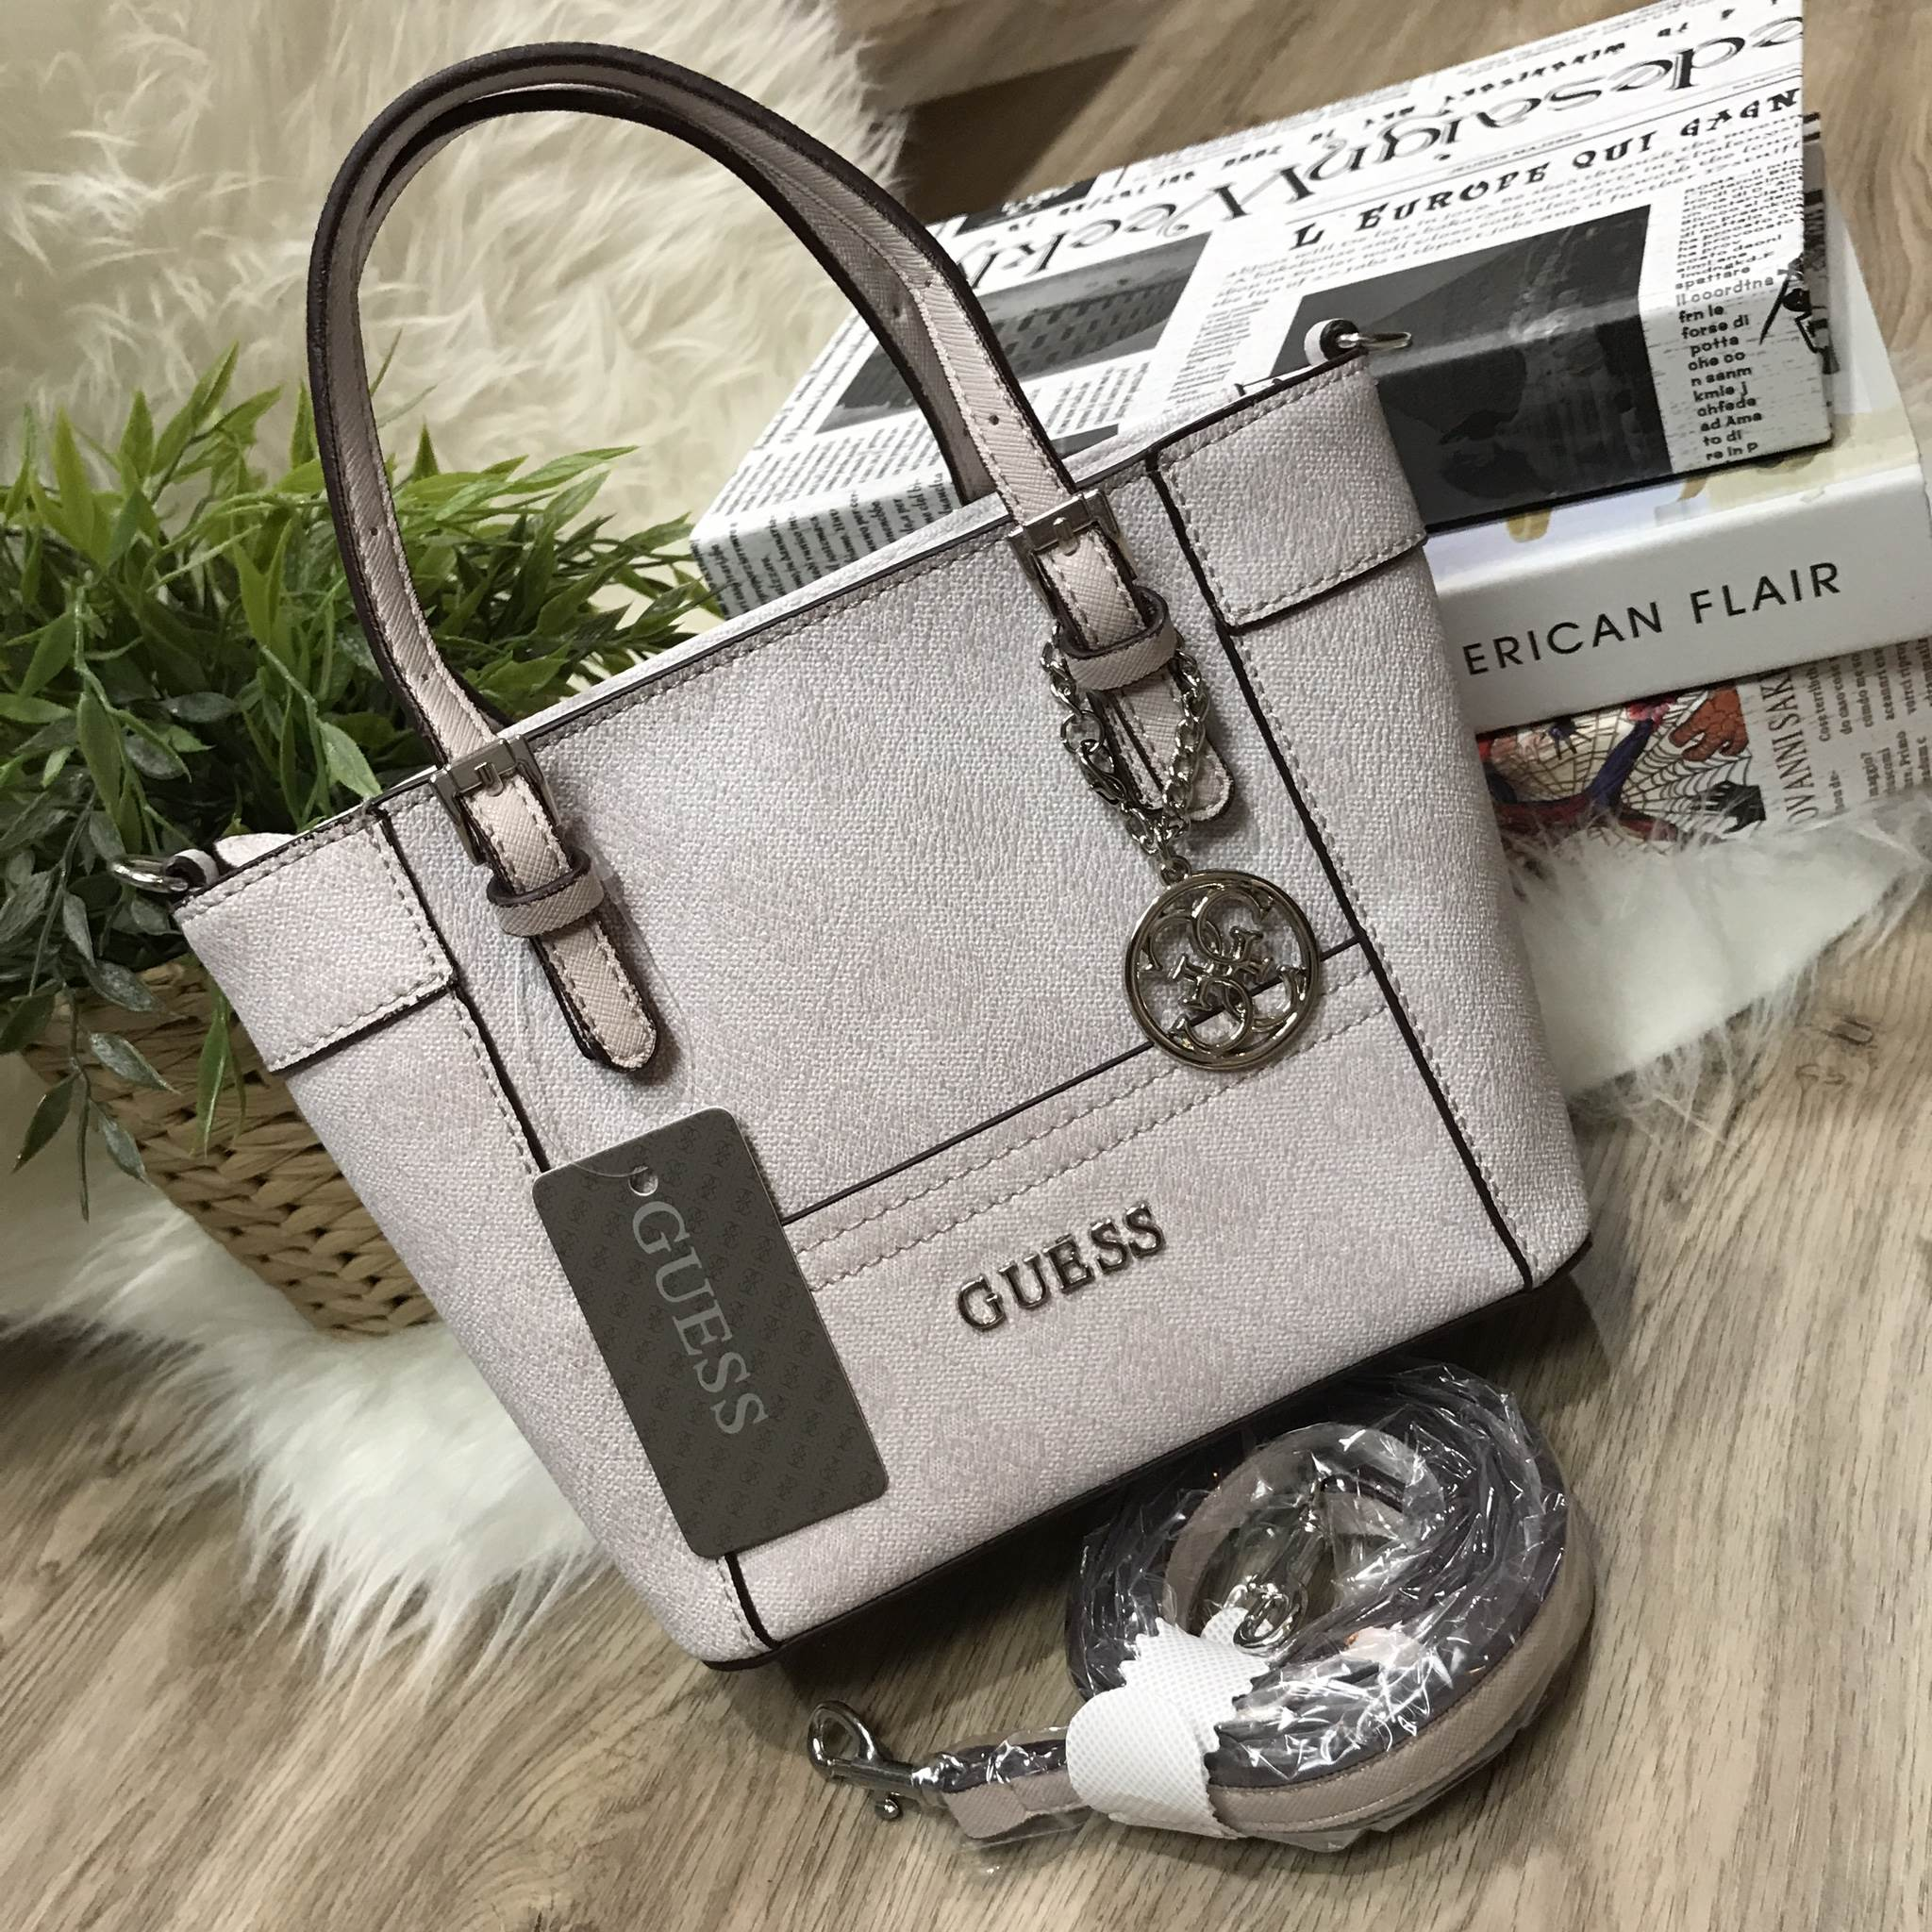 GUESS Mini Cross Body BAG 2017 Ivory Color